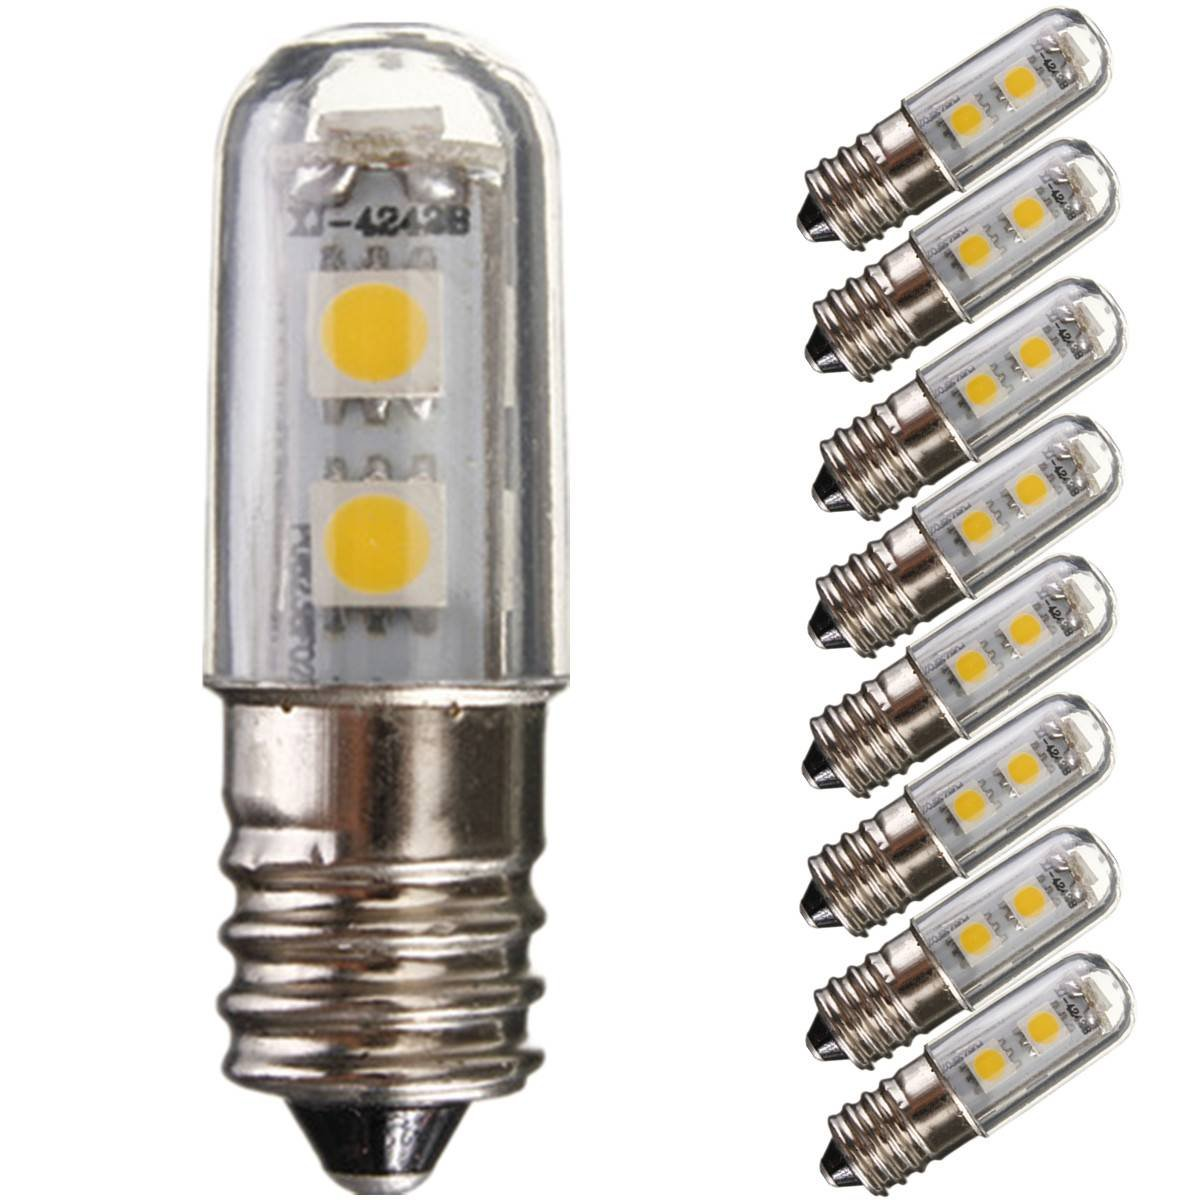 8 Pcs E14 1W Led Refrigerator Bulbs 7 Smd 5050 Warm White Colour 15w Replacement for Halogen bulb 3000K 45LM Energy honsco e10 1w 3000k 70lm 5050 smd led warm white light screw bulb for diy pair 12v